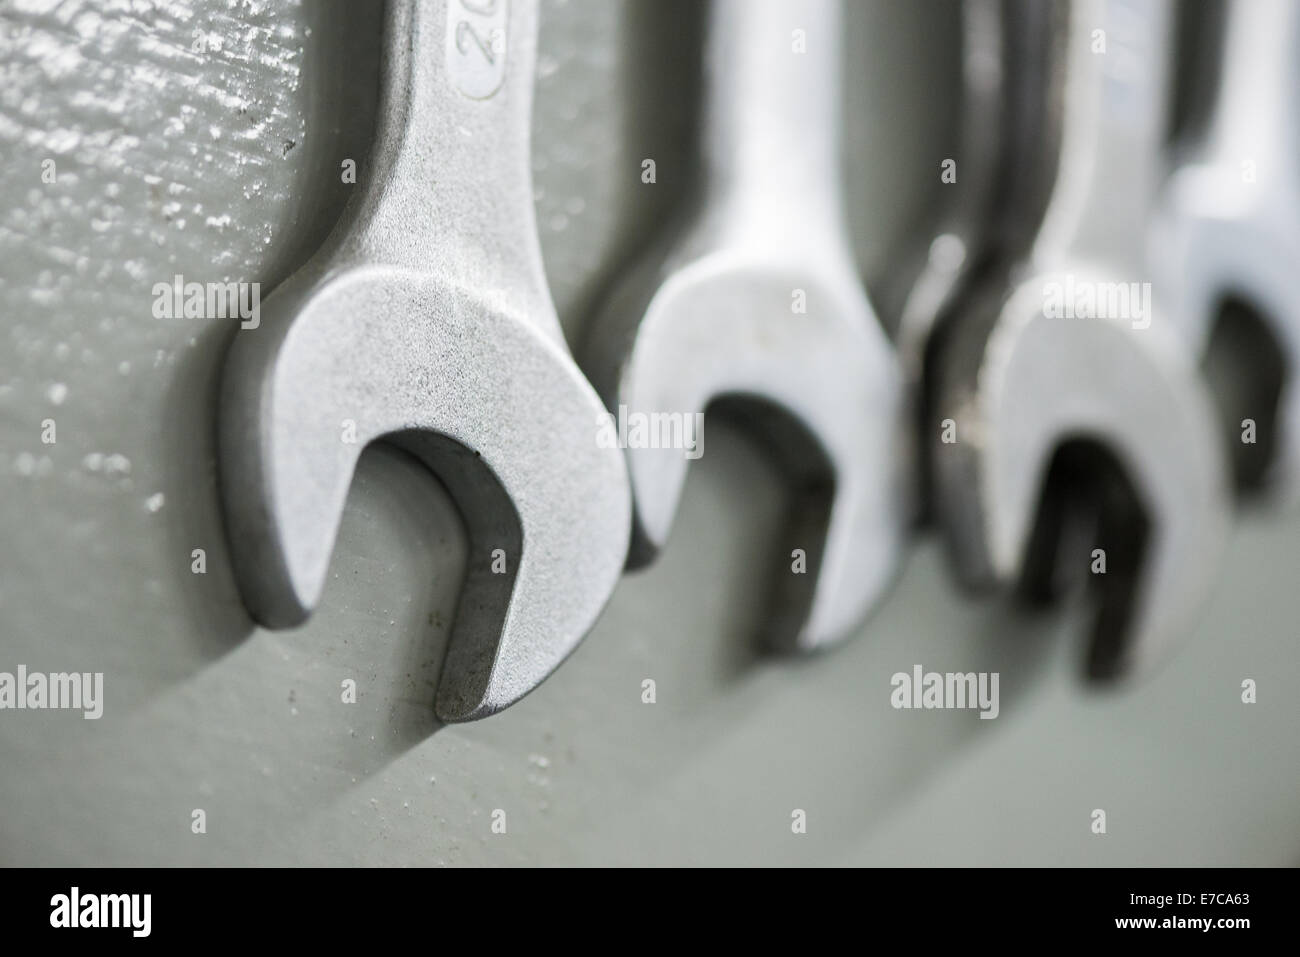 Spanners hanging on a tool rack - Stock Image